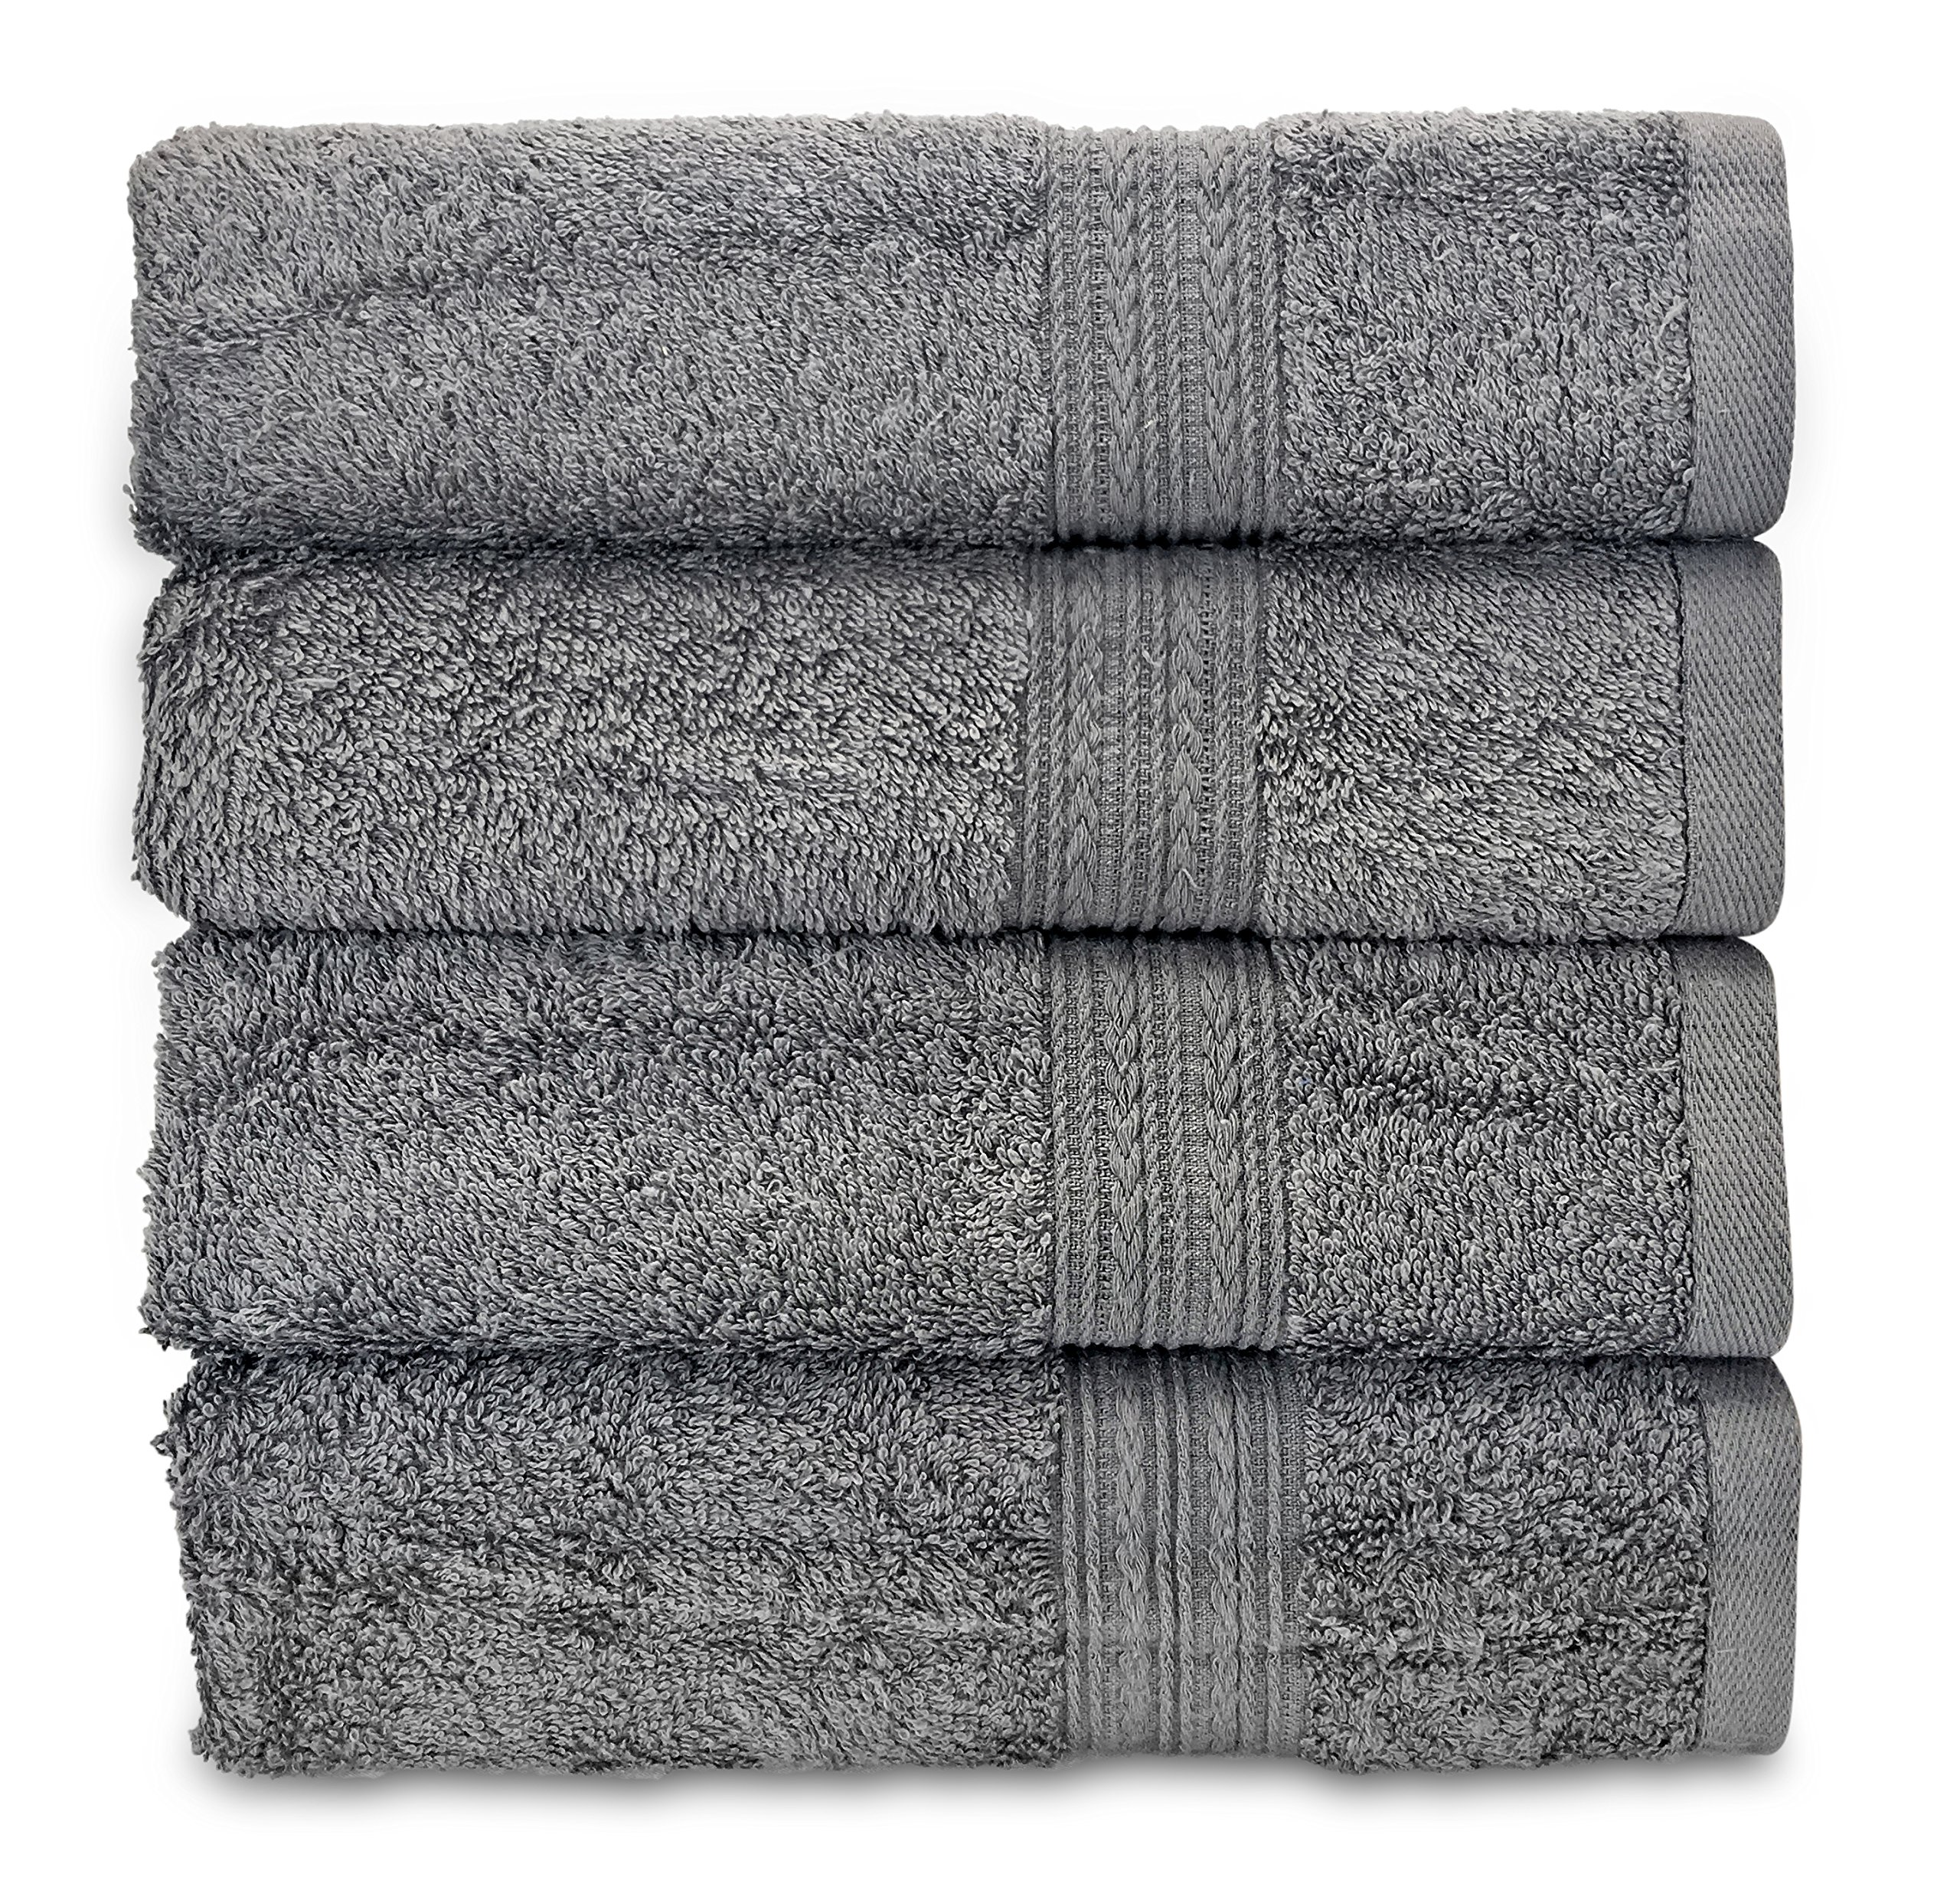 Goza Towels Cotton Hand Towels, 16 by 28 inch (4 Pack) (Grey)